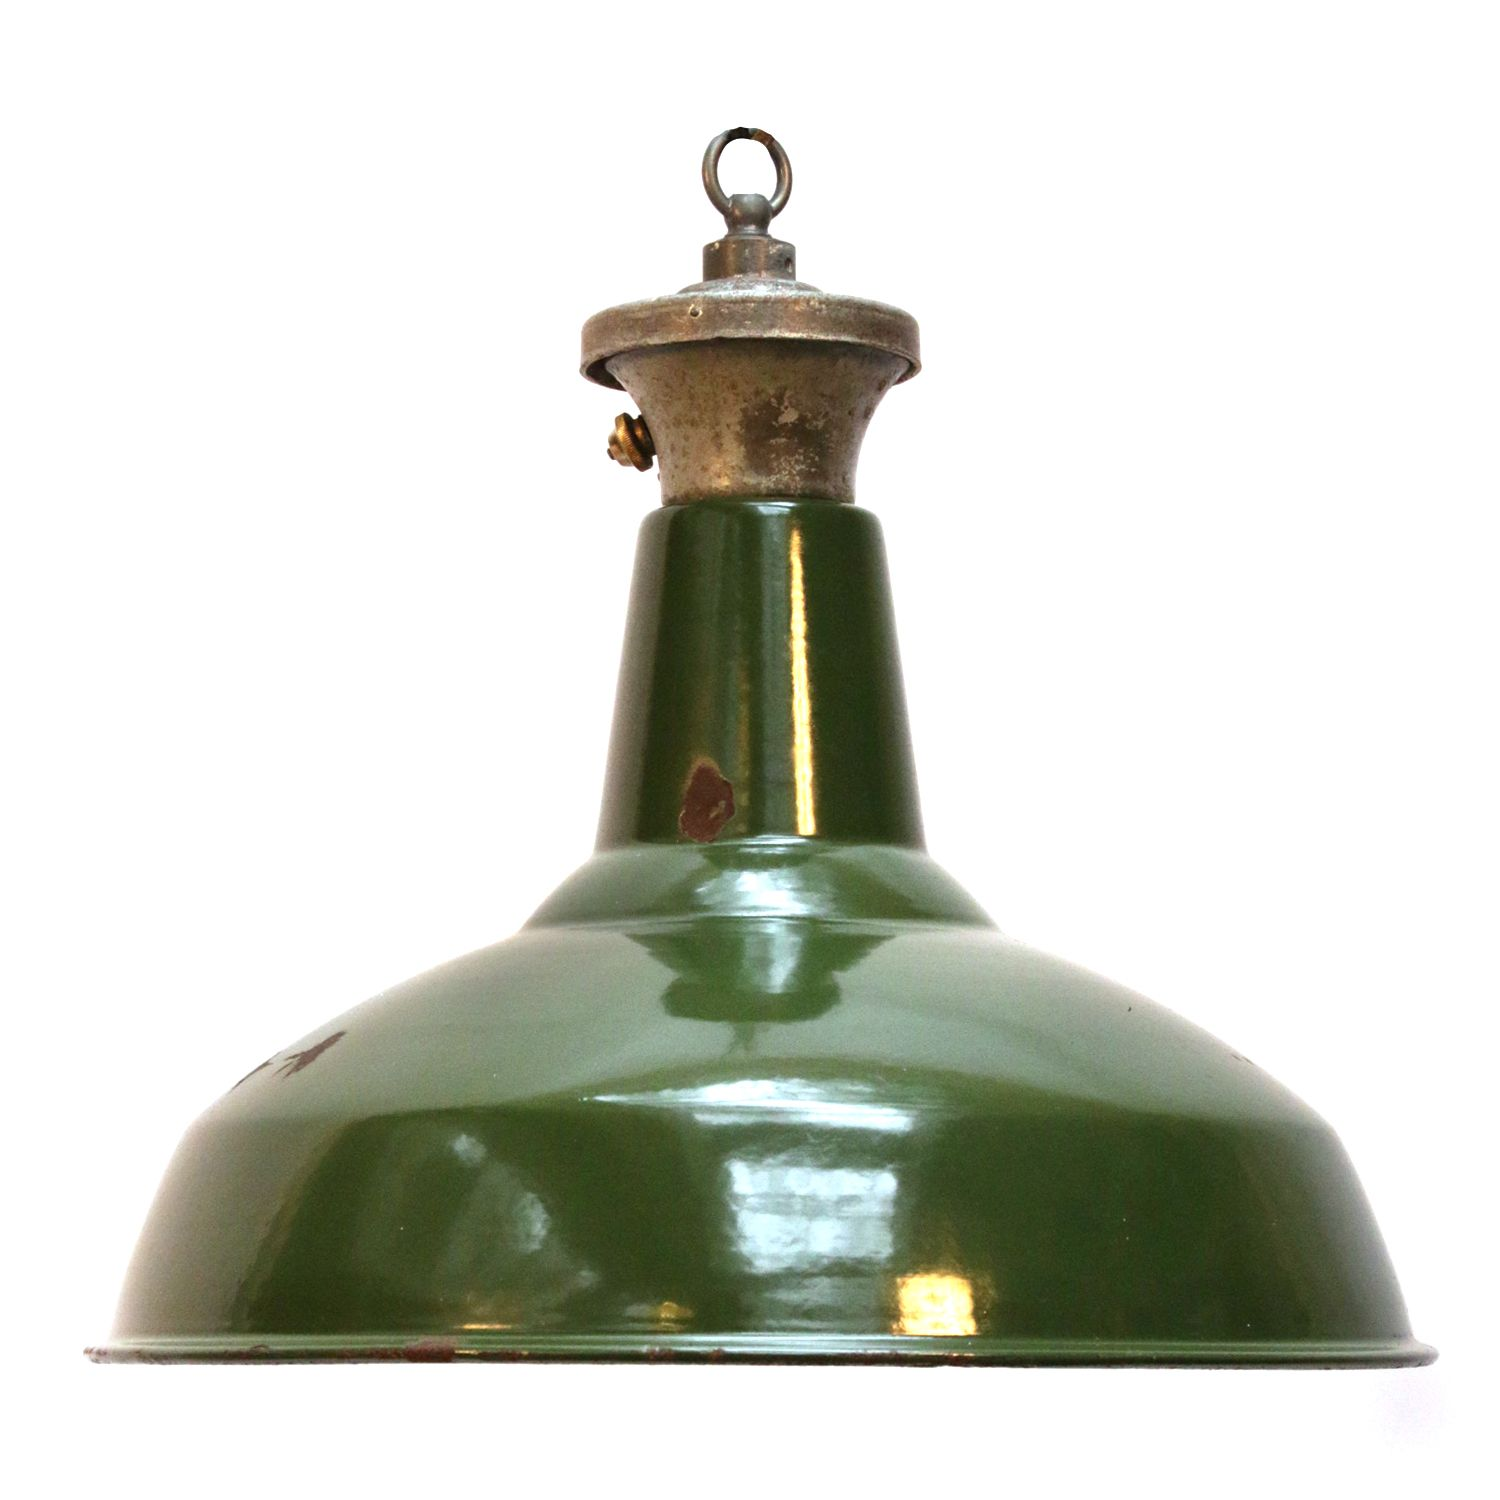 kirton 40   Lights   360volt. The biggest collection vintage industrial lighting. Specialized in factory, enamel and industrial lamps. www.360volt.com